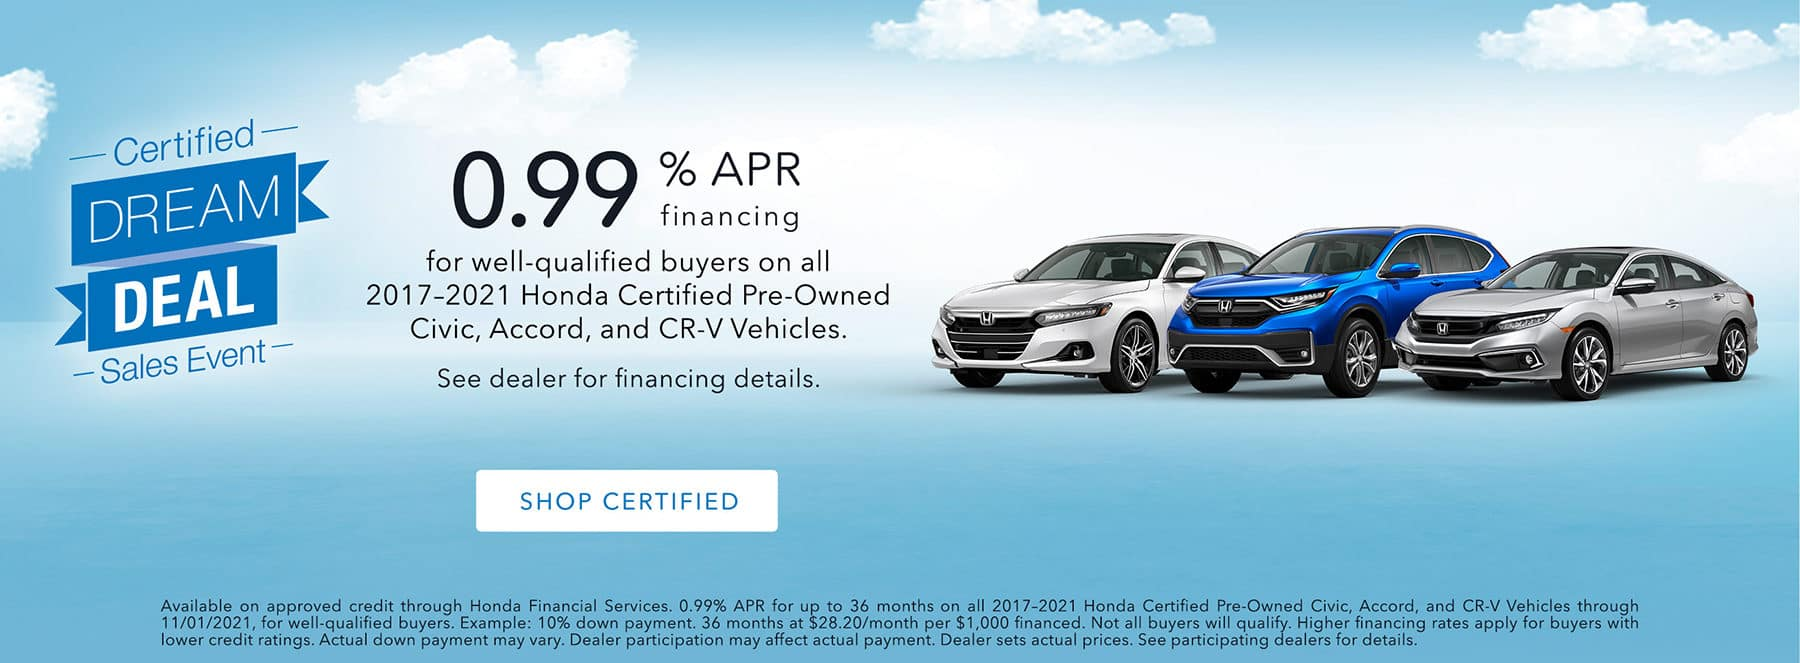 Honda Certified Dream Deal Sales Event 0.99% APR Financing on select Honda Certified Pre-Owned Vehicles